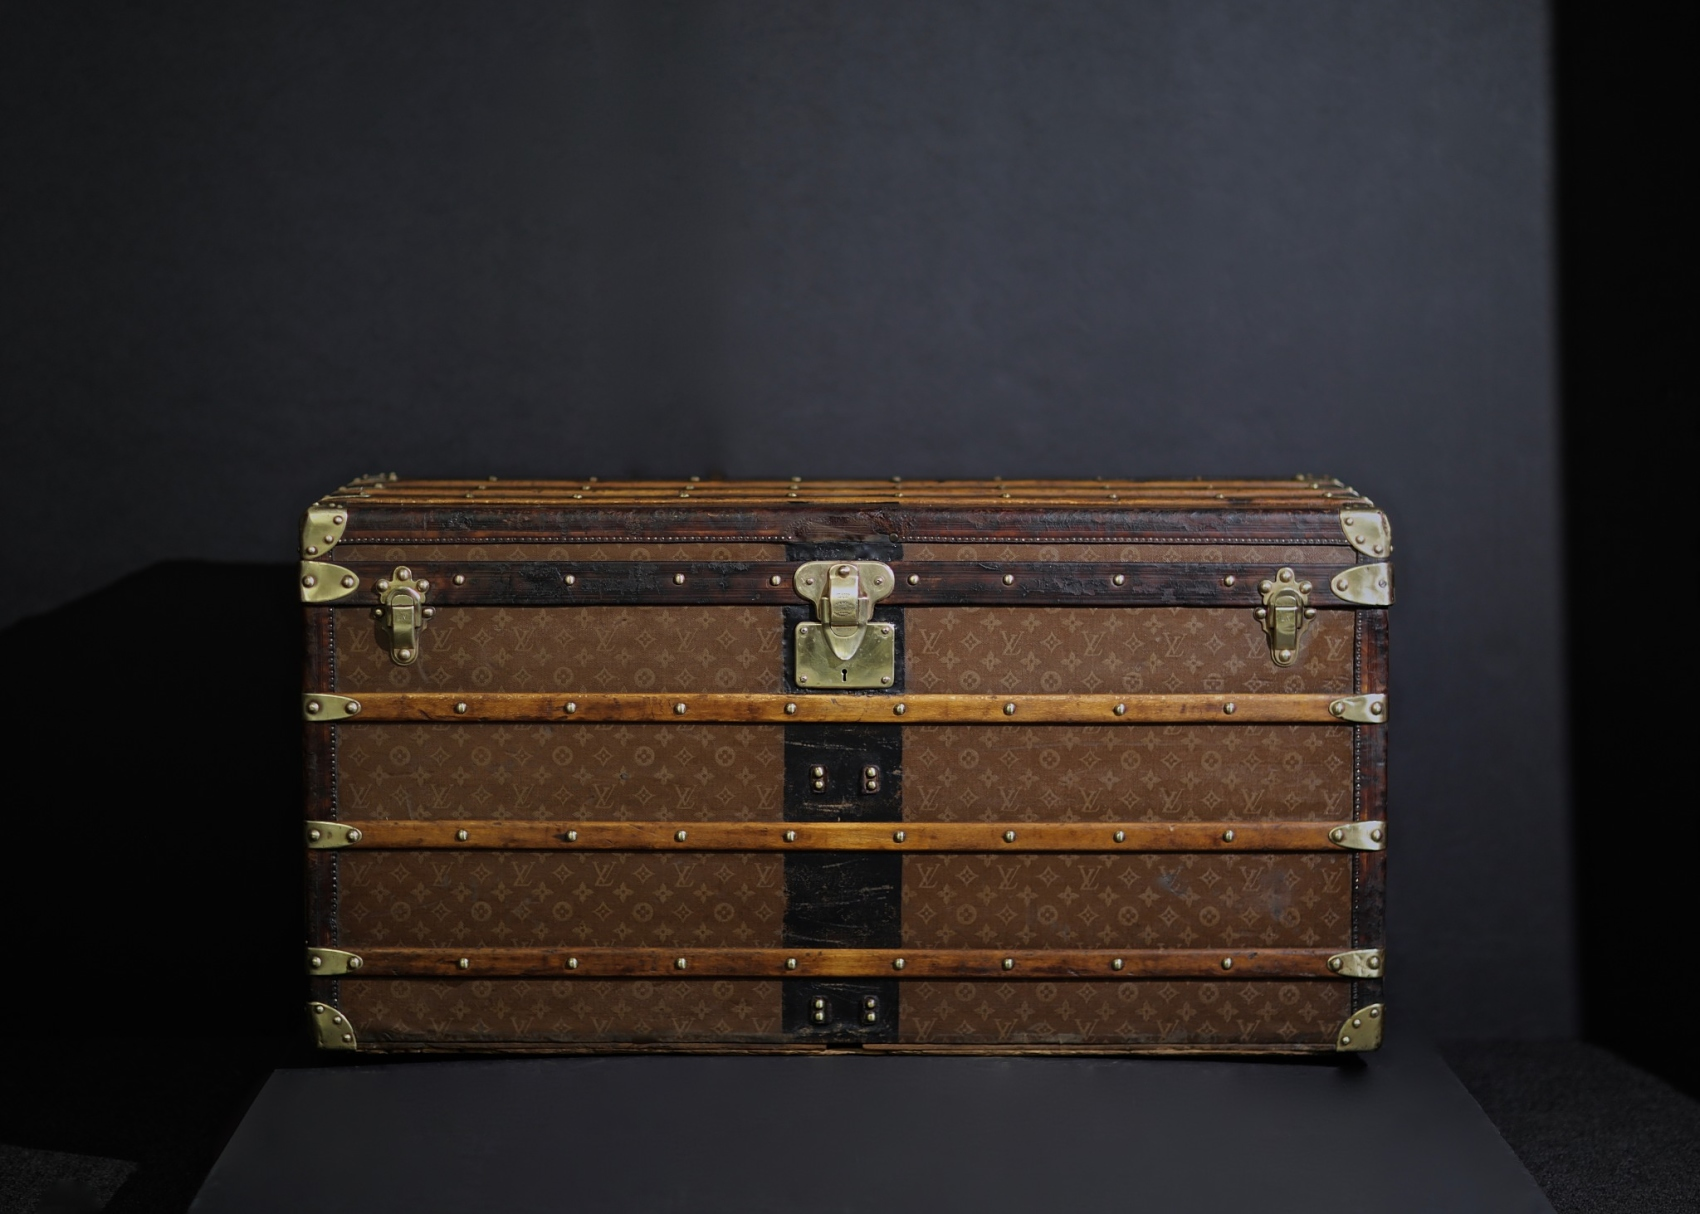 the-well-traveled-trunk-louis-vuitton-thumbnail-product-5676-1